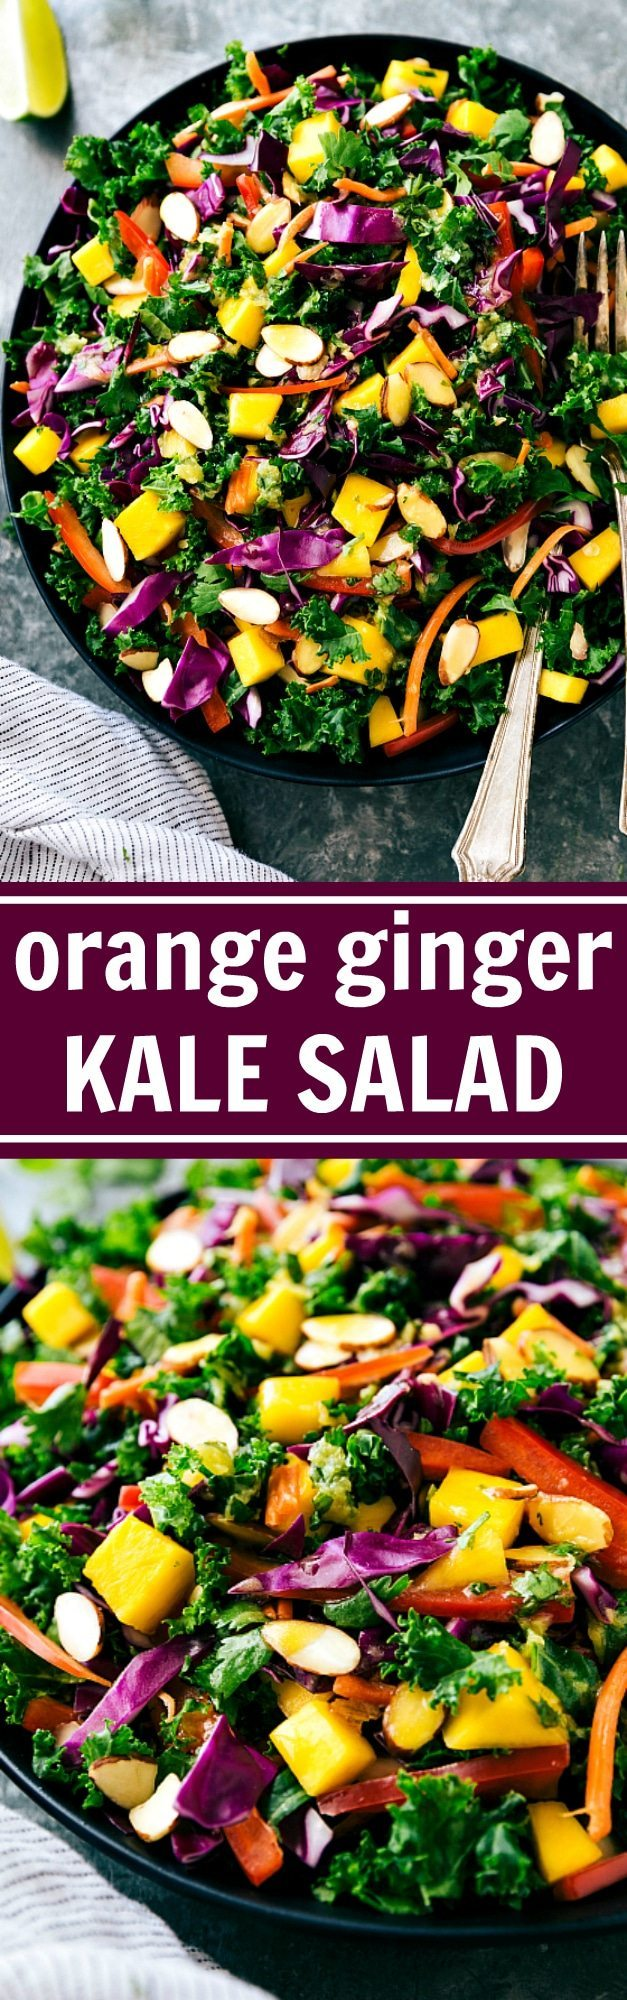 A delicious Orange Ginger Dressed Kale Salad recipe from chelseasmessyapron.com